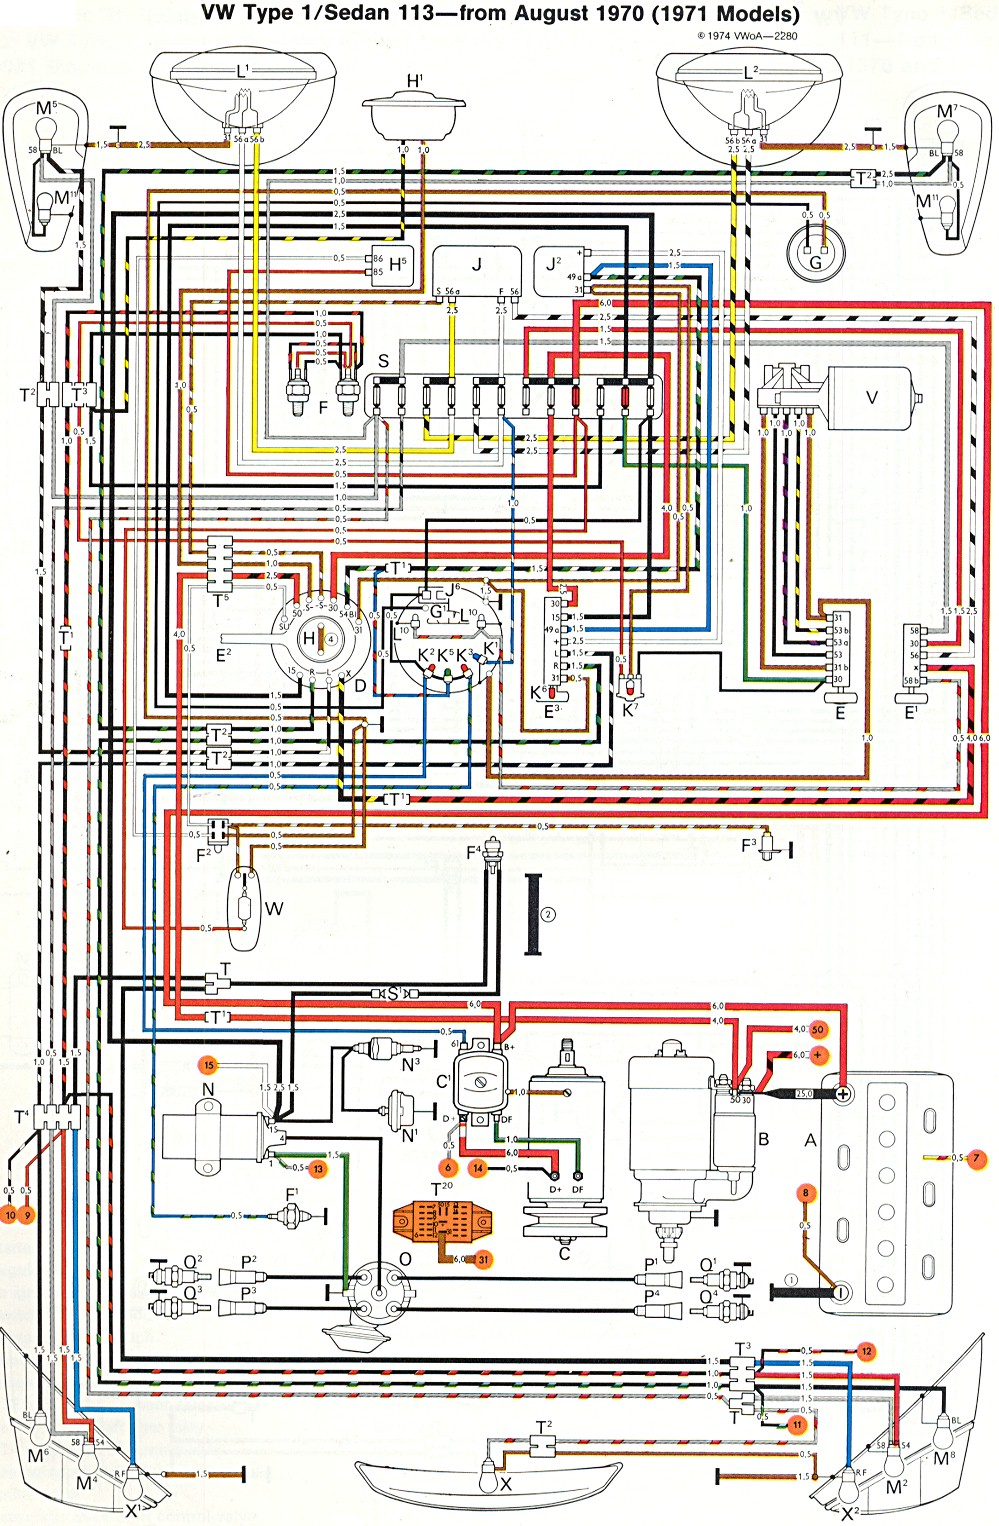 bug_super_71 1971 super beetle wiring diagram thegoldenbug com vw bug wiring diagram at n-0.co